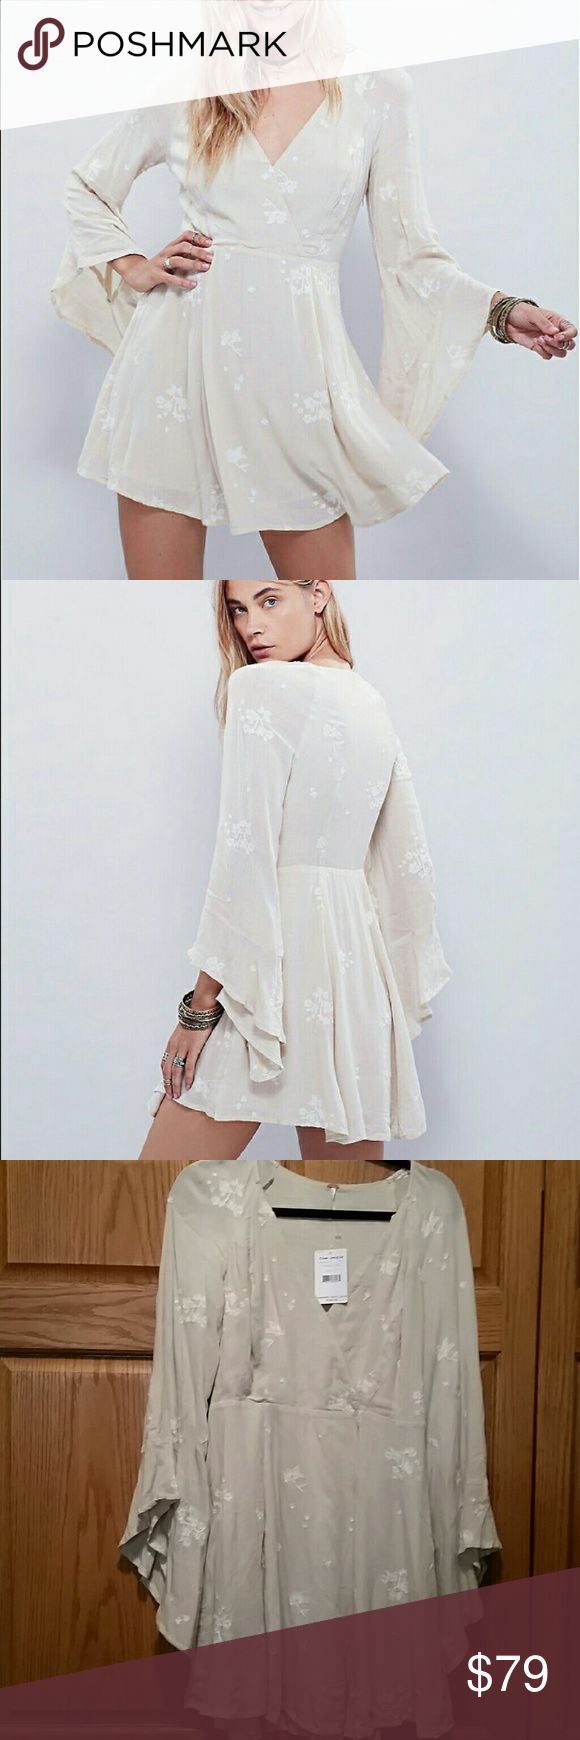 """NWT Free People Jasmine Embroidered Dress Free People Almond Combo Jasmine Embroidered Mini Dress, 65% rayon, 35% cotton, washable, 18"""" armpit to armpit (36"""" all around) 30"""" waist, 14"""" arm inseam before cuff that drapes down, 34"""" length, an airy mini dress with a flared skirt, flouncy angel sleeves, crossover V neckline, floral embroidery stitching detail throughout, concealed side zip closure, fully lined, (measurements are approx.) Gorgeous and flattering. Never worn, tags still attached…"""